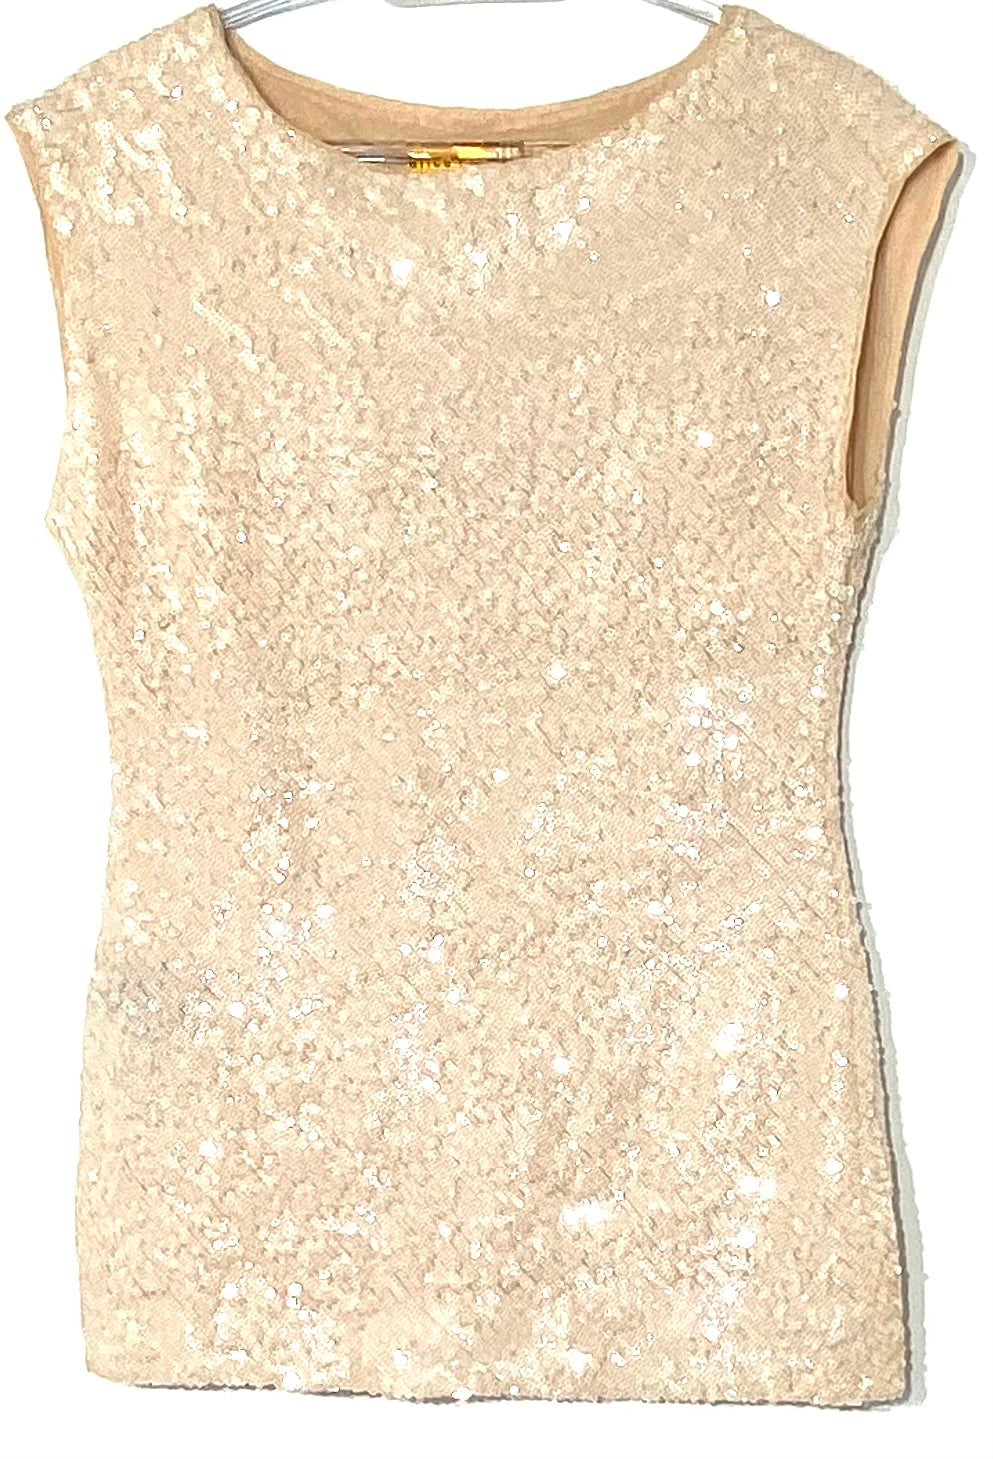 Primary Photo - BRAND: ALICE + OLIVIA <BR>STYLE: TOP SLEEVELESS <BR>COLOR: SEQUIN <BR>SIZE: XS/TP<BR>SKU: 262-26275-68633<BR>BRILLIANCE IN SPARKLES<BR>DESIGNER FINAL